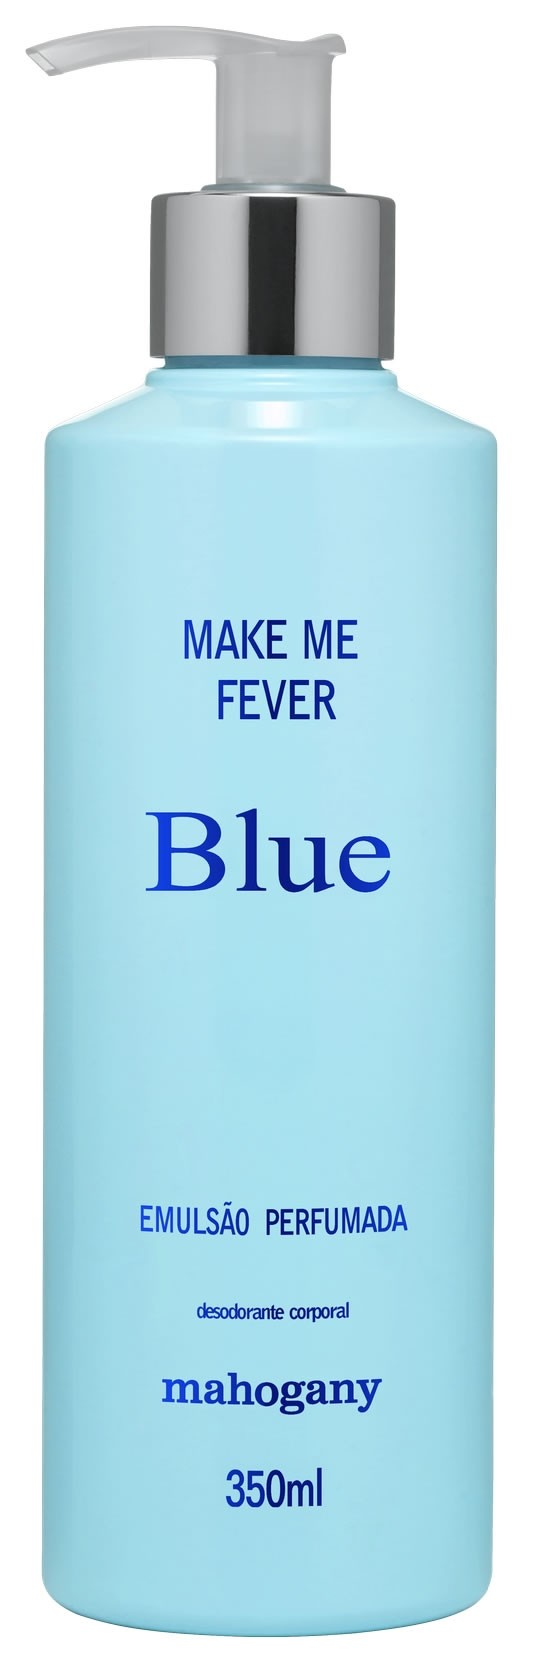 HIDRATANTE MAKE ME FEVER BLUE 350 ML